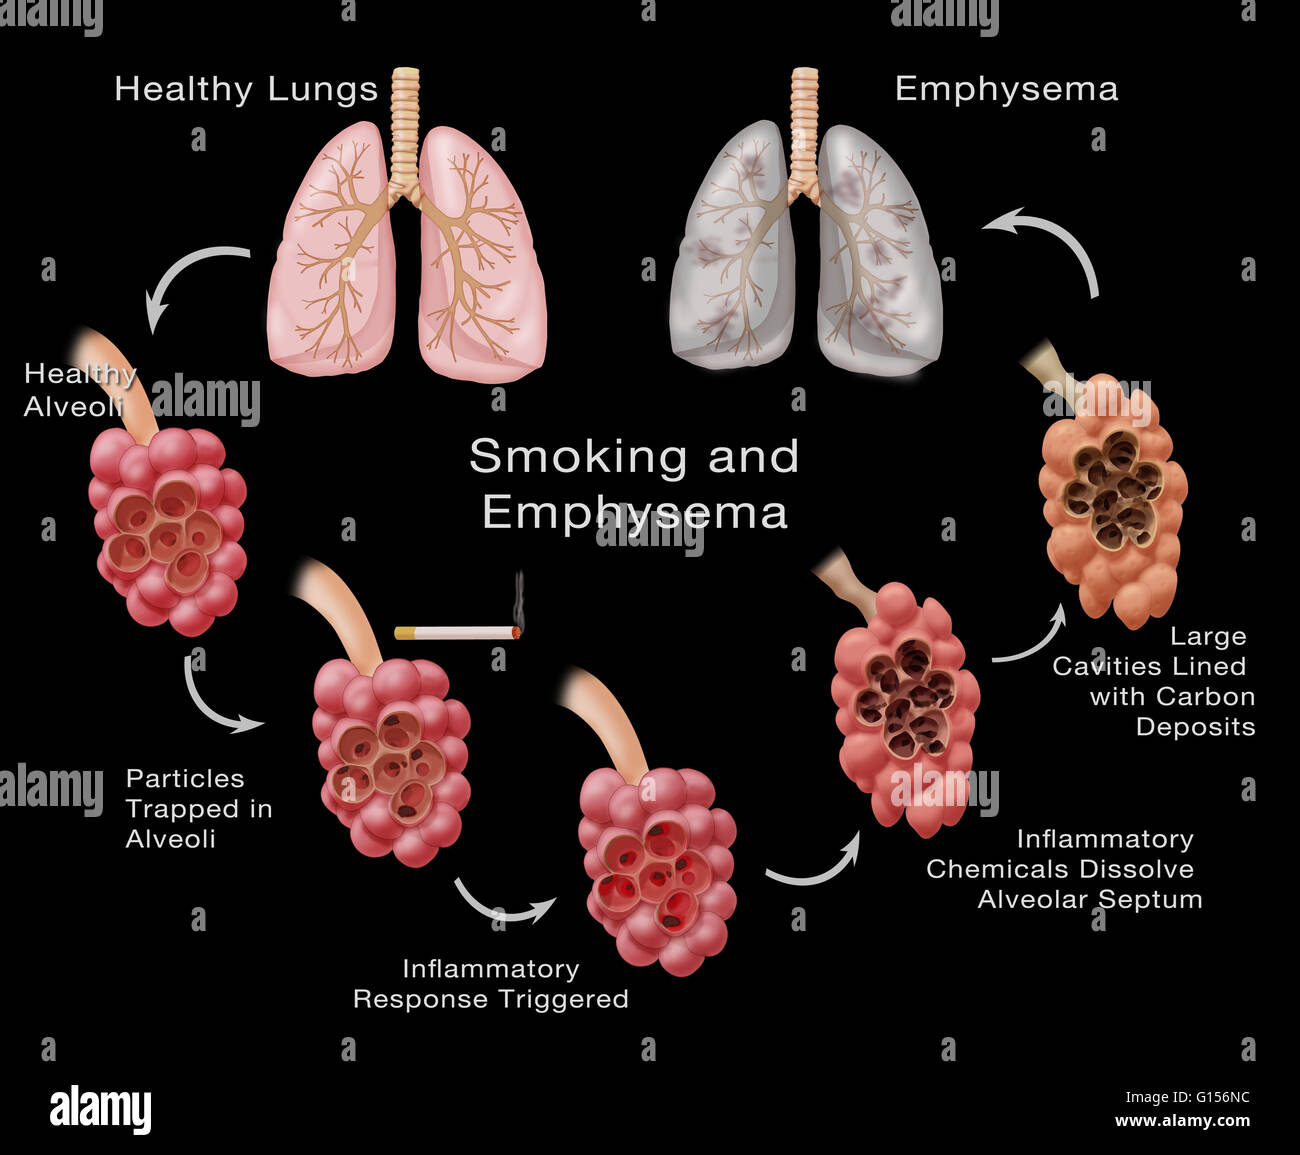 Stages Of Lung Damage Of A Smoker Leading To Emphysema